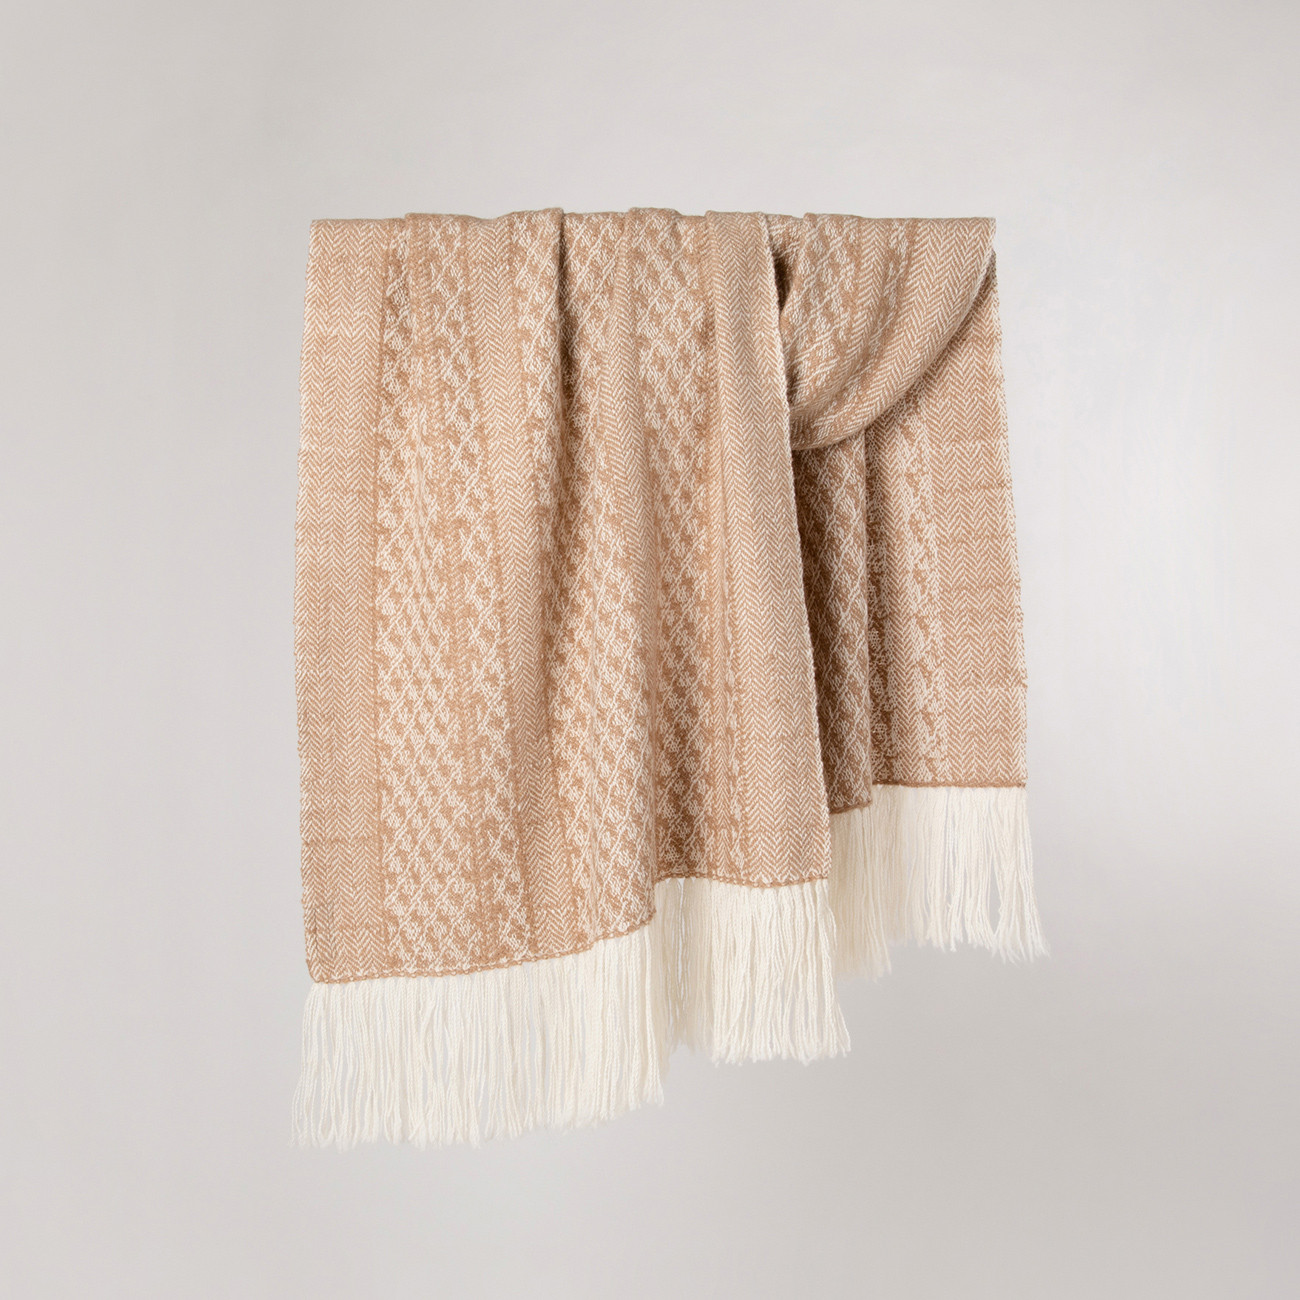 Handwoven Staffa Shawl - Natural Caramel and Cream Alpaca - 0